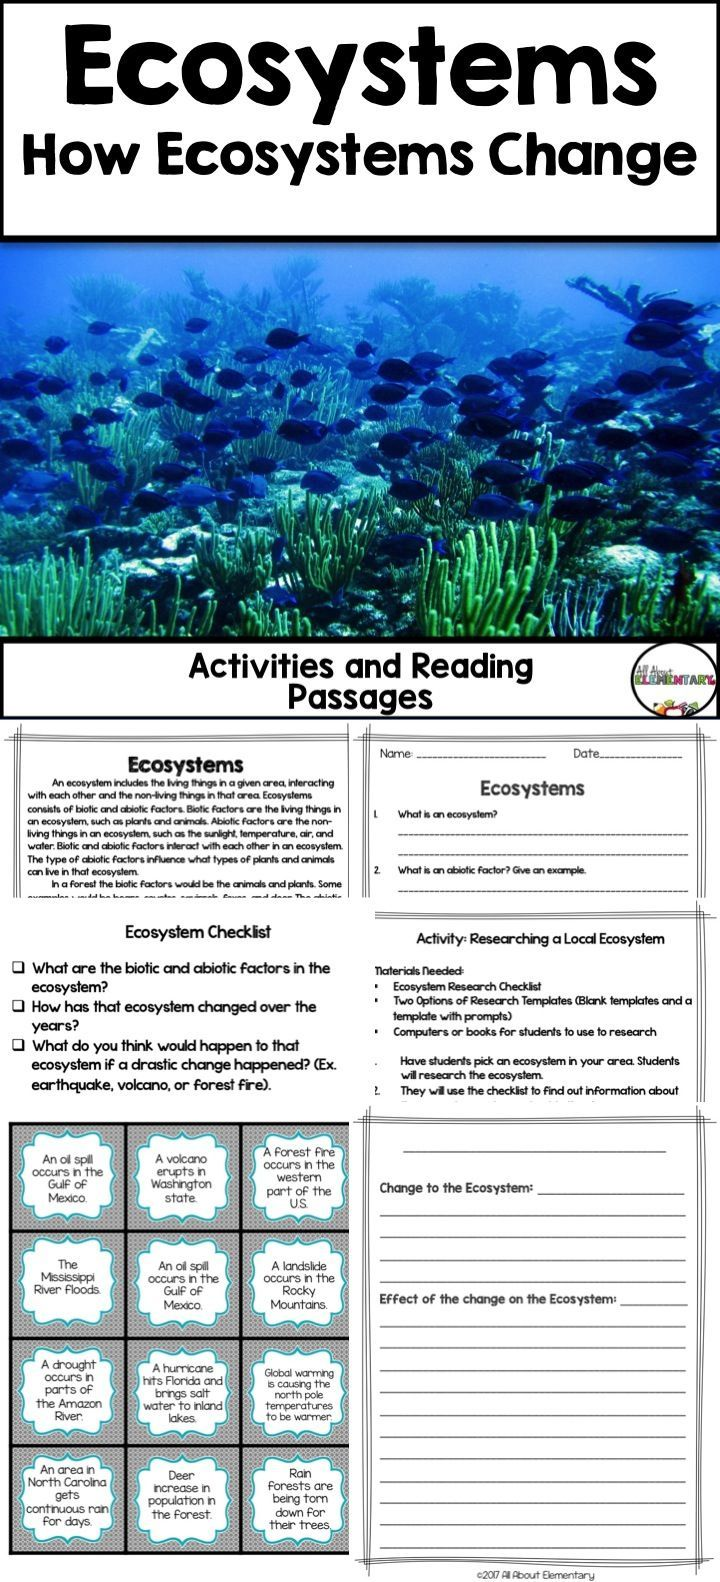 Ecosystem Changes Reading Passage And Activities Ecosystems Ecosystem Activities Reading Passages